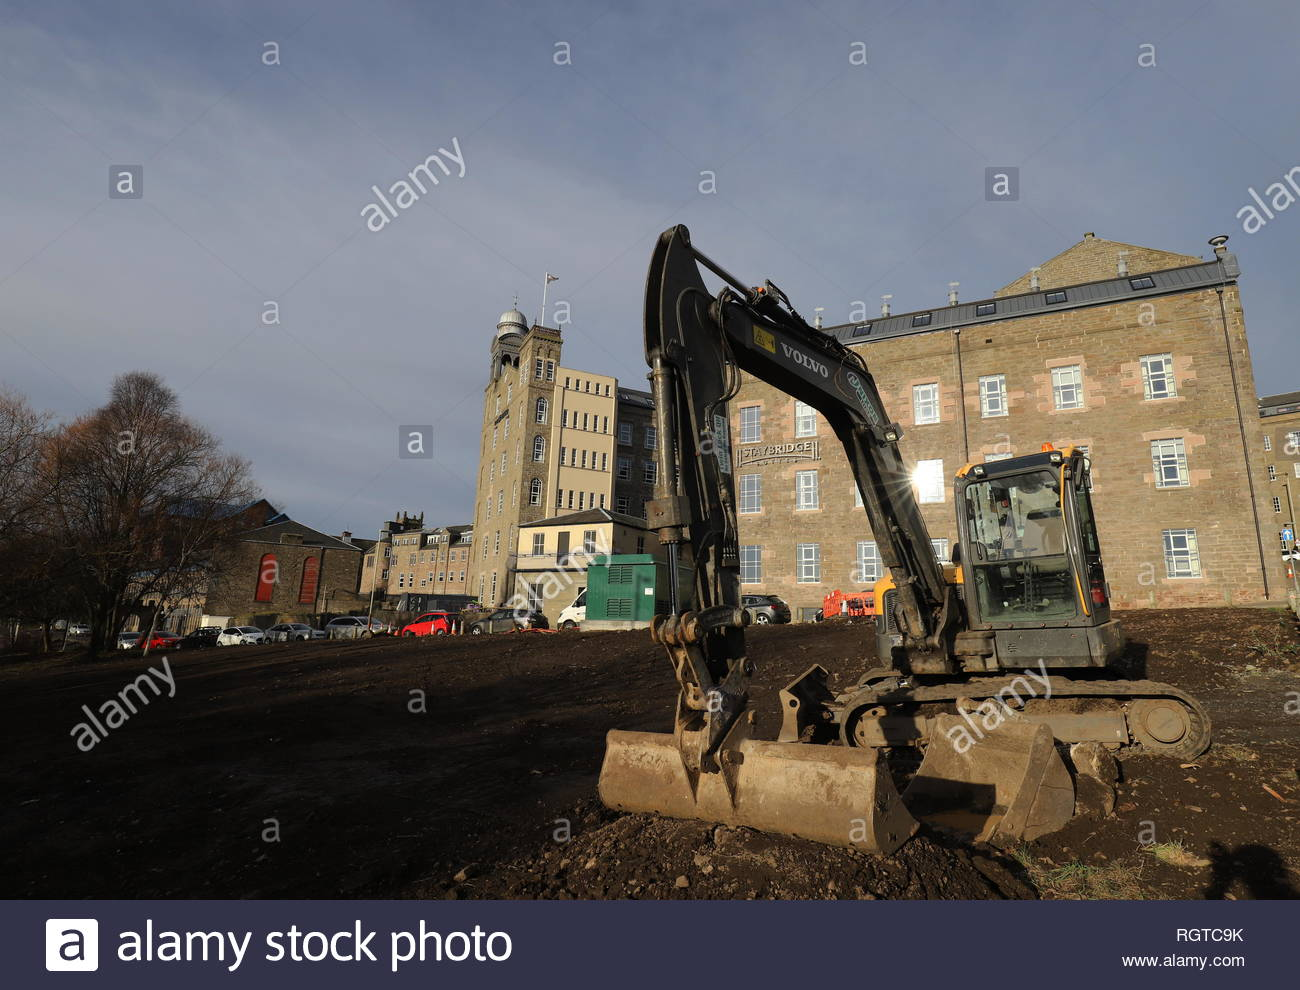 Excavator with Hotel Indigo and Staybridge Suites Dundee Scotland  January 2019 - Stock Image